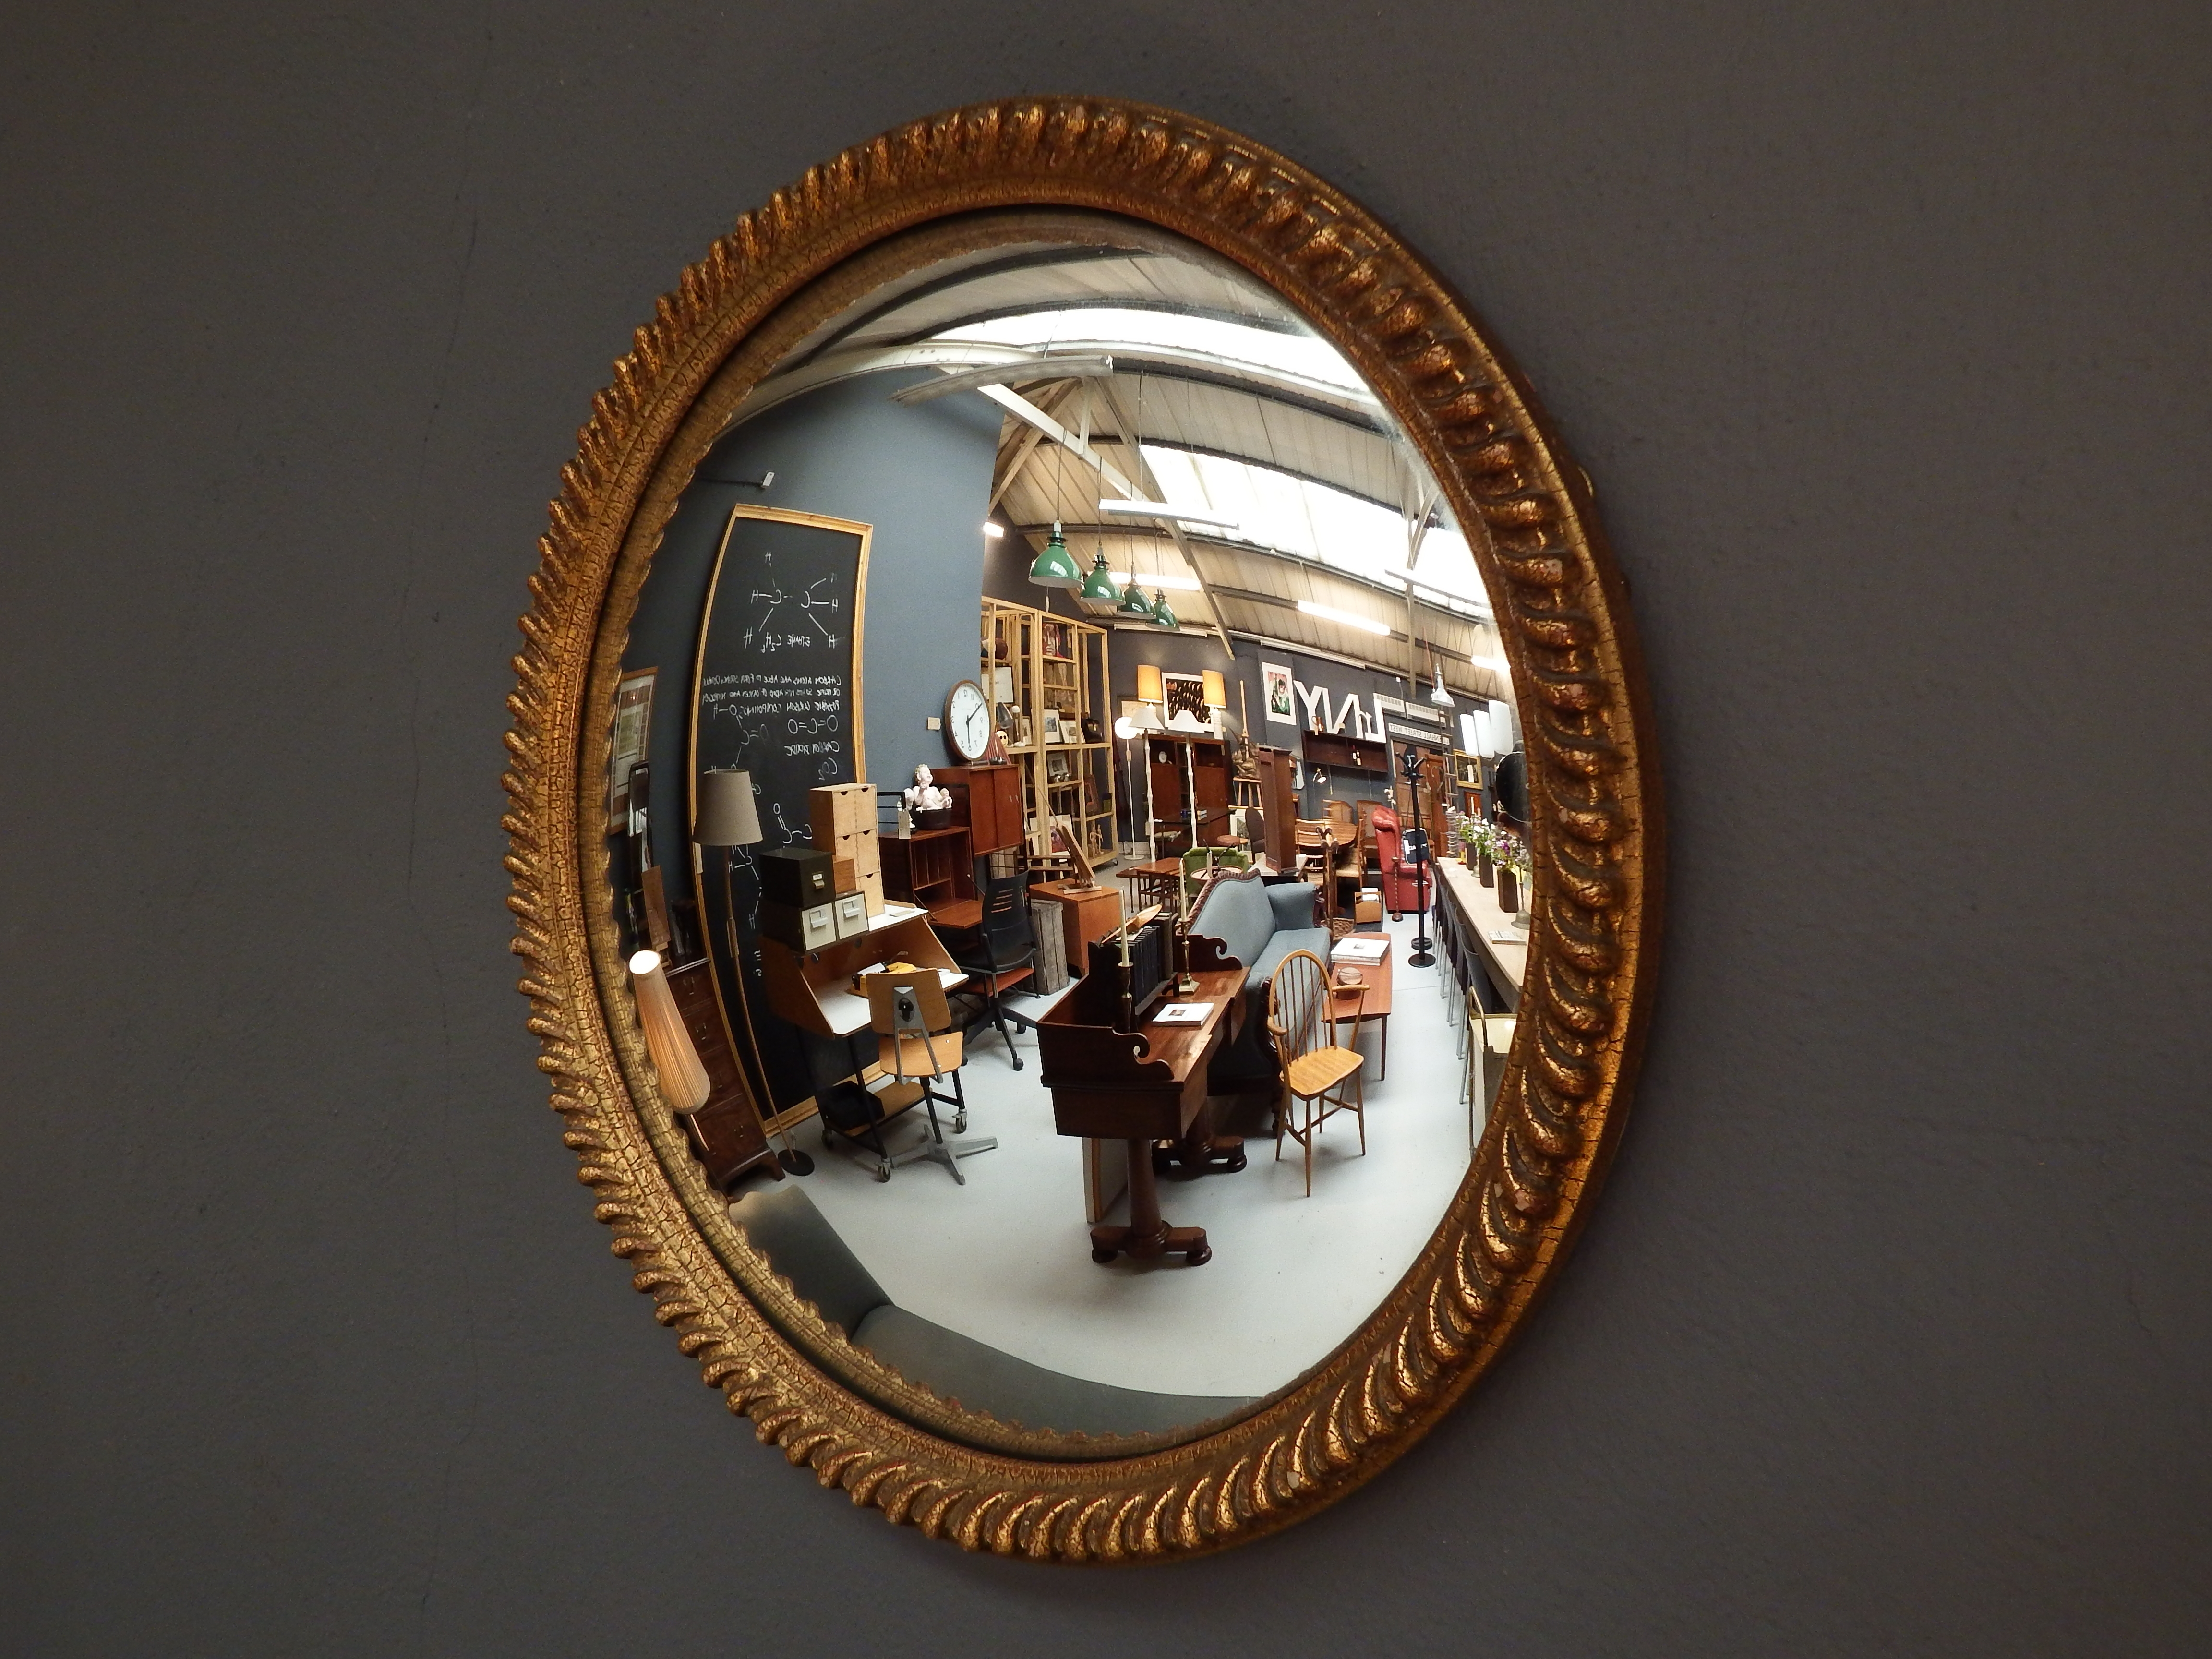 Vintage Convex Mirror Drummond Reid Antiques Intended For Convex Wall Mirrors (Image 14 of 15)